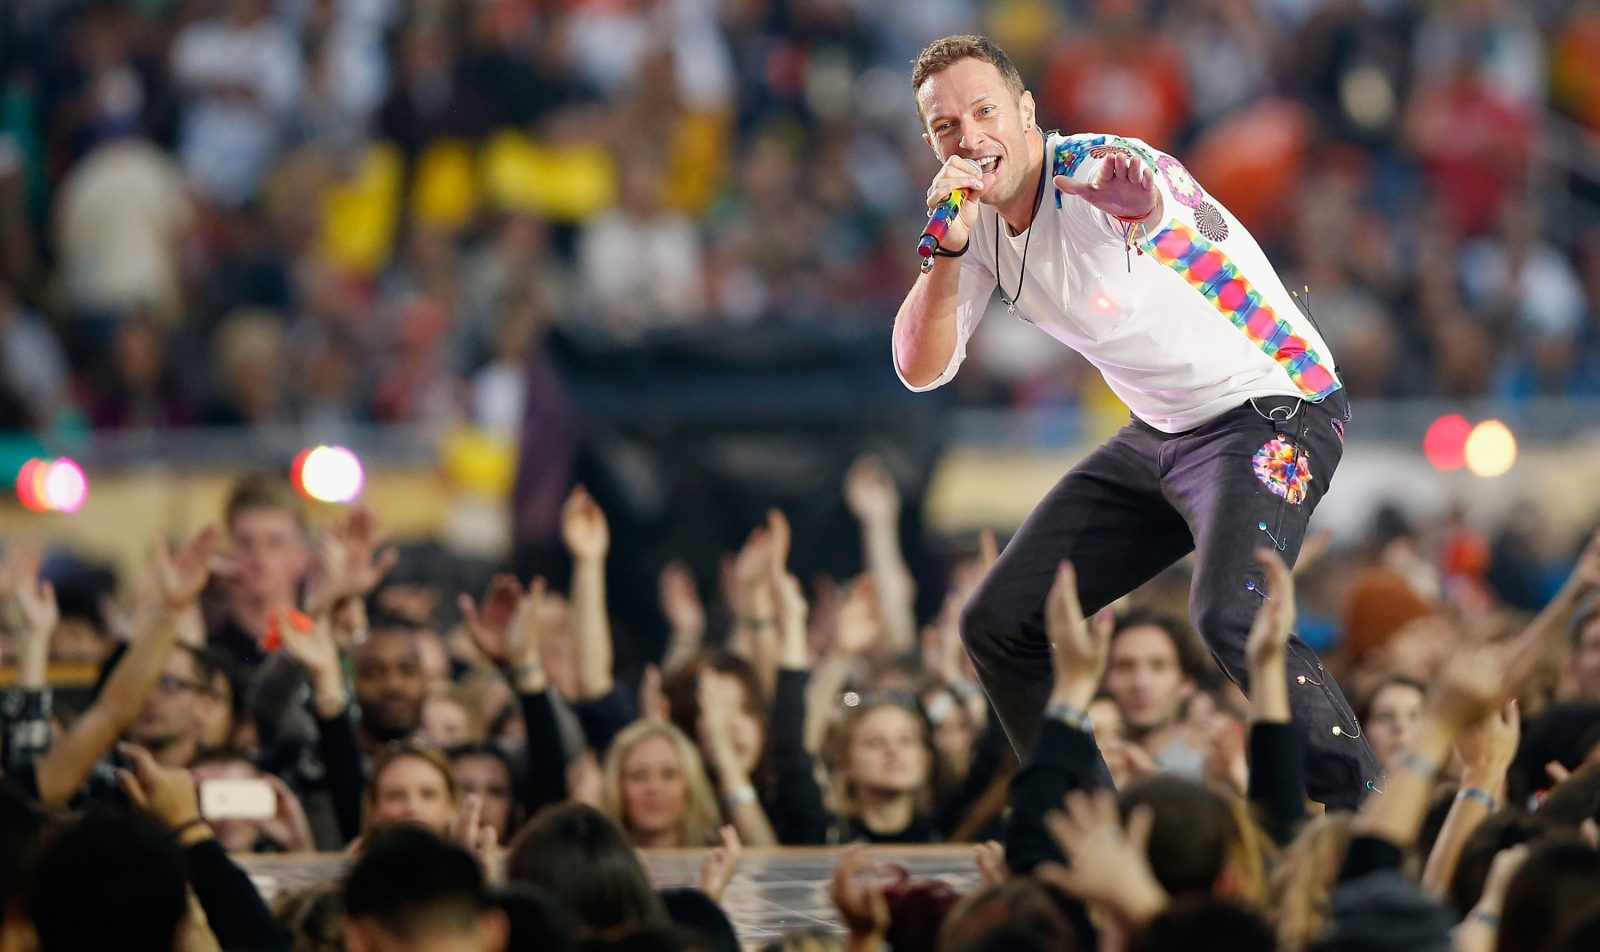 Coldplay will perform Aug. 1 at the First Niagara Center. (Getty Images)